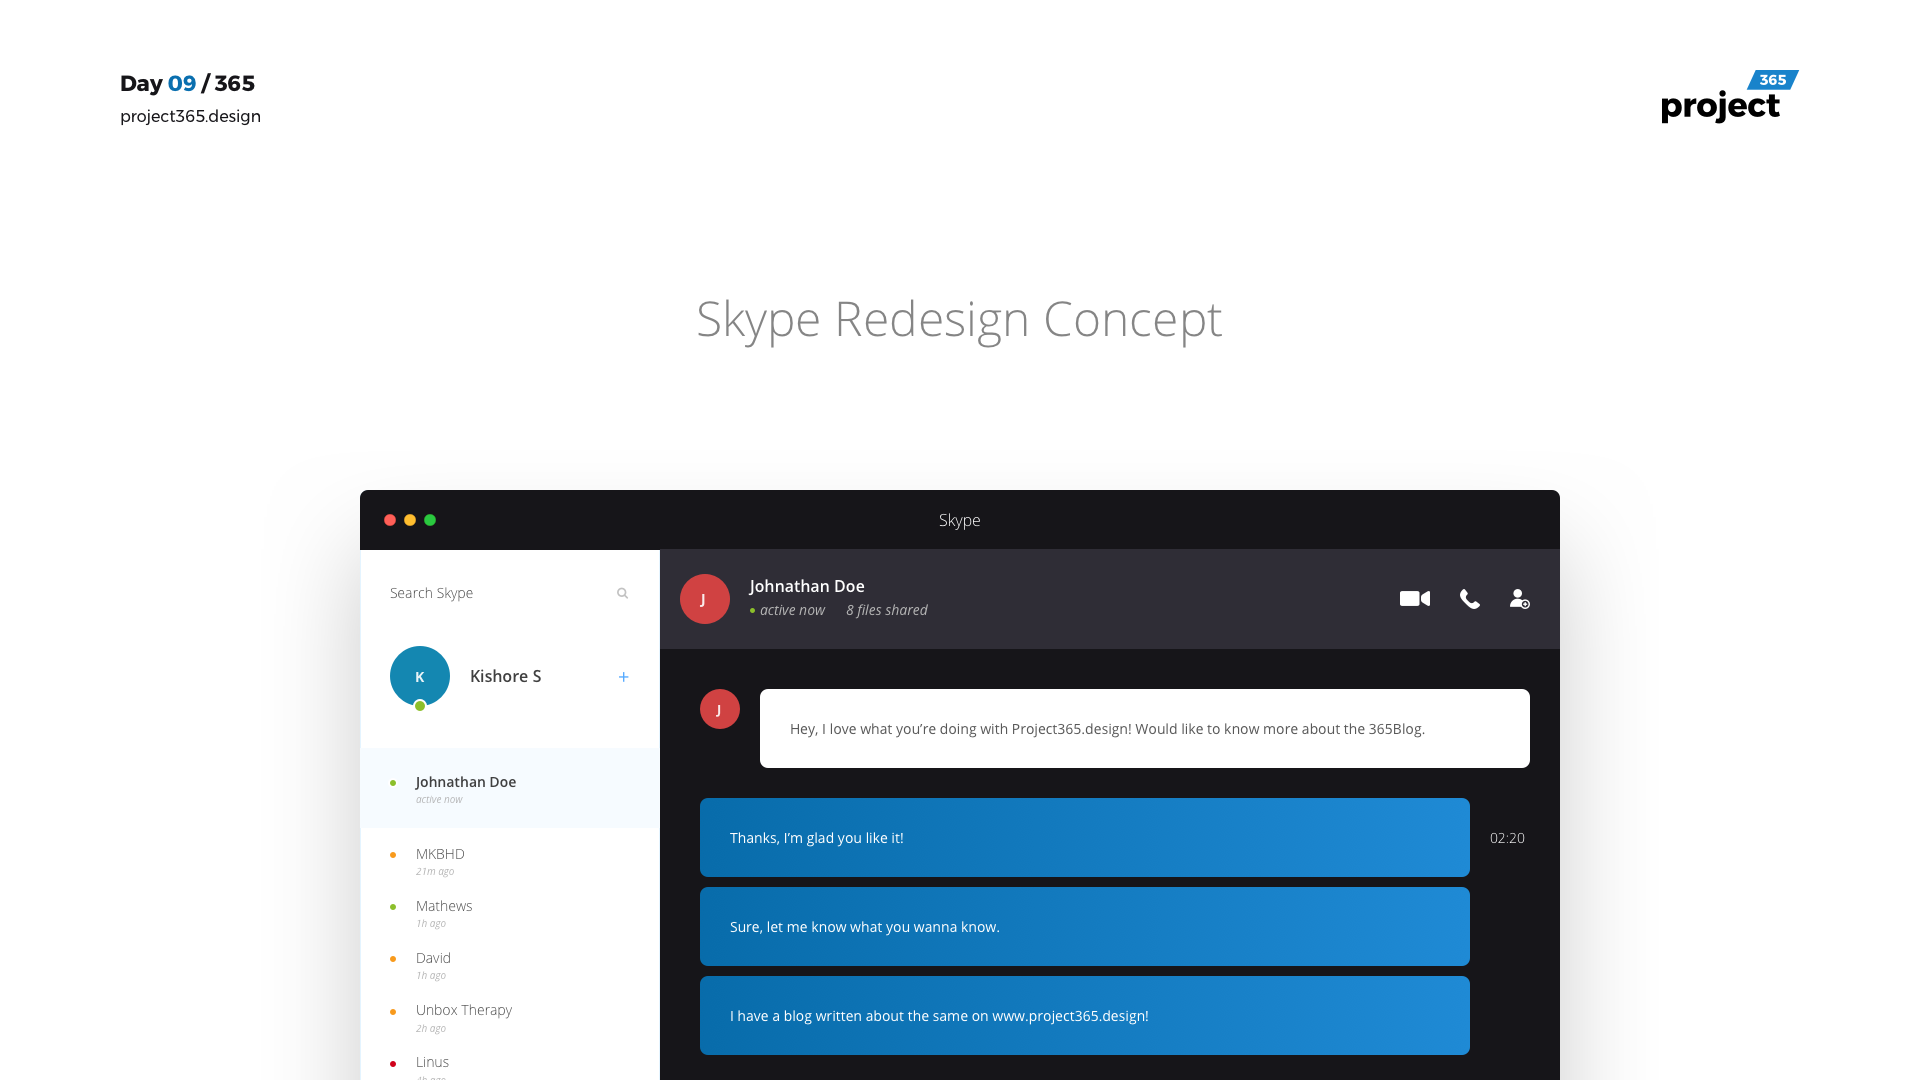 Day 09 – Skype Redesign